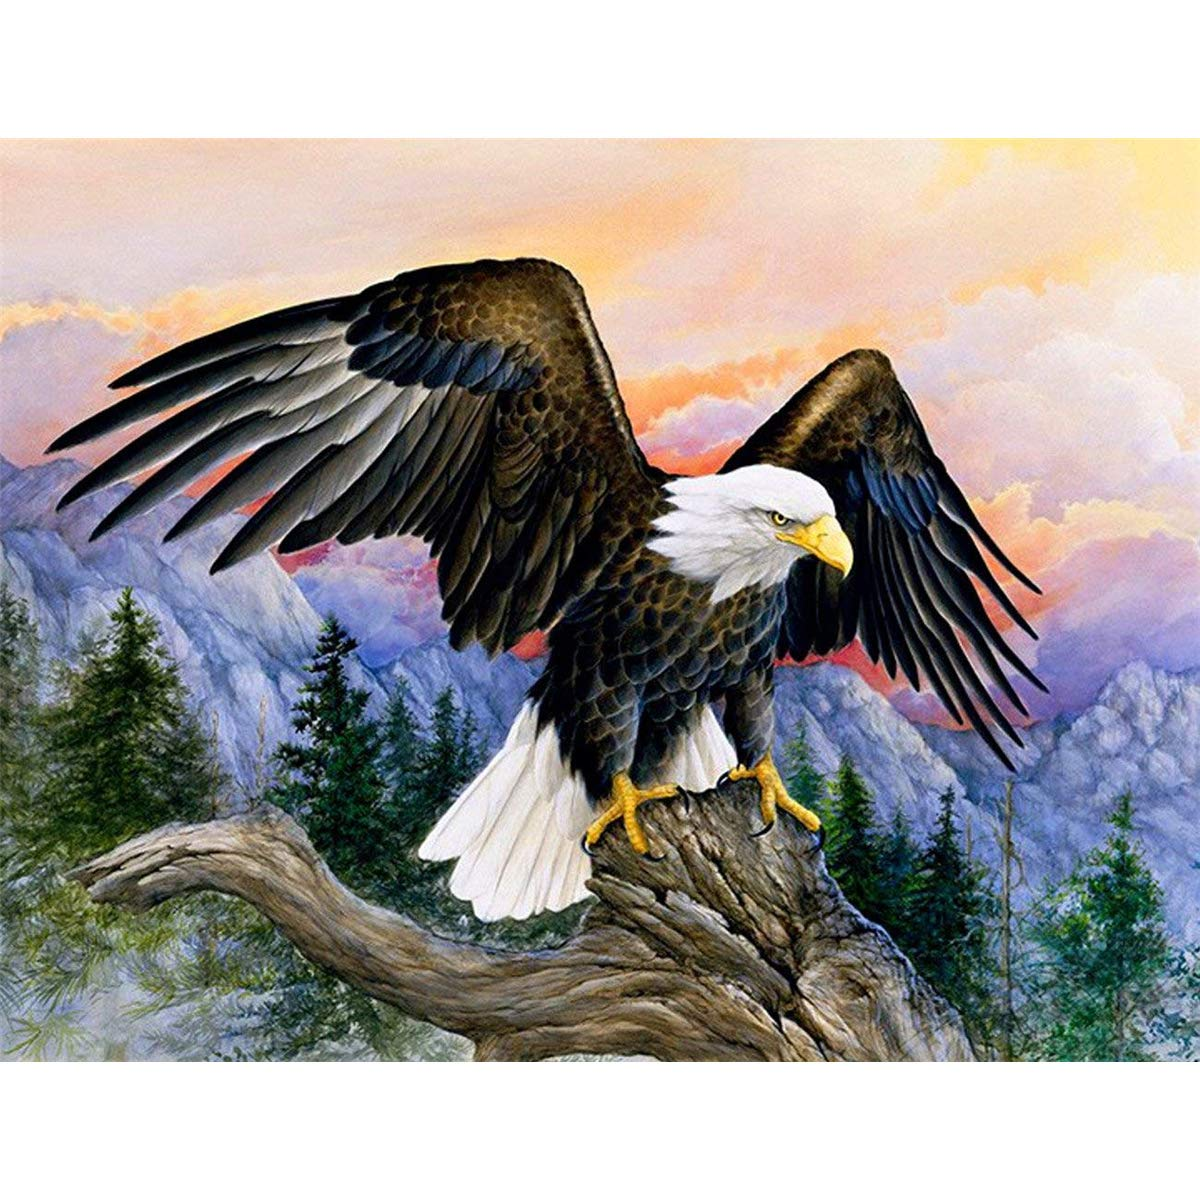 5D Diamond Painting Kit Full Drill DIY Rhinestone Embroidery Cross Stitch Arts Craft for Home Wall Decor Eagle 40x30cm